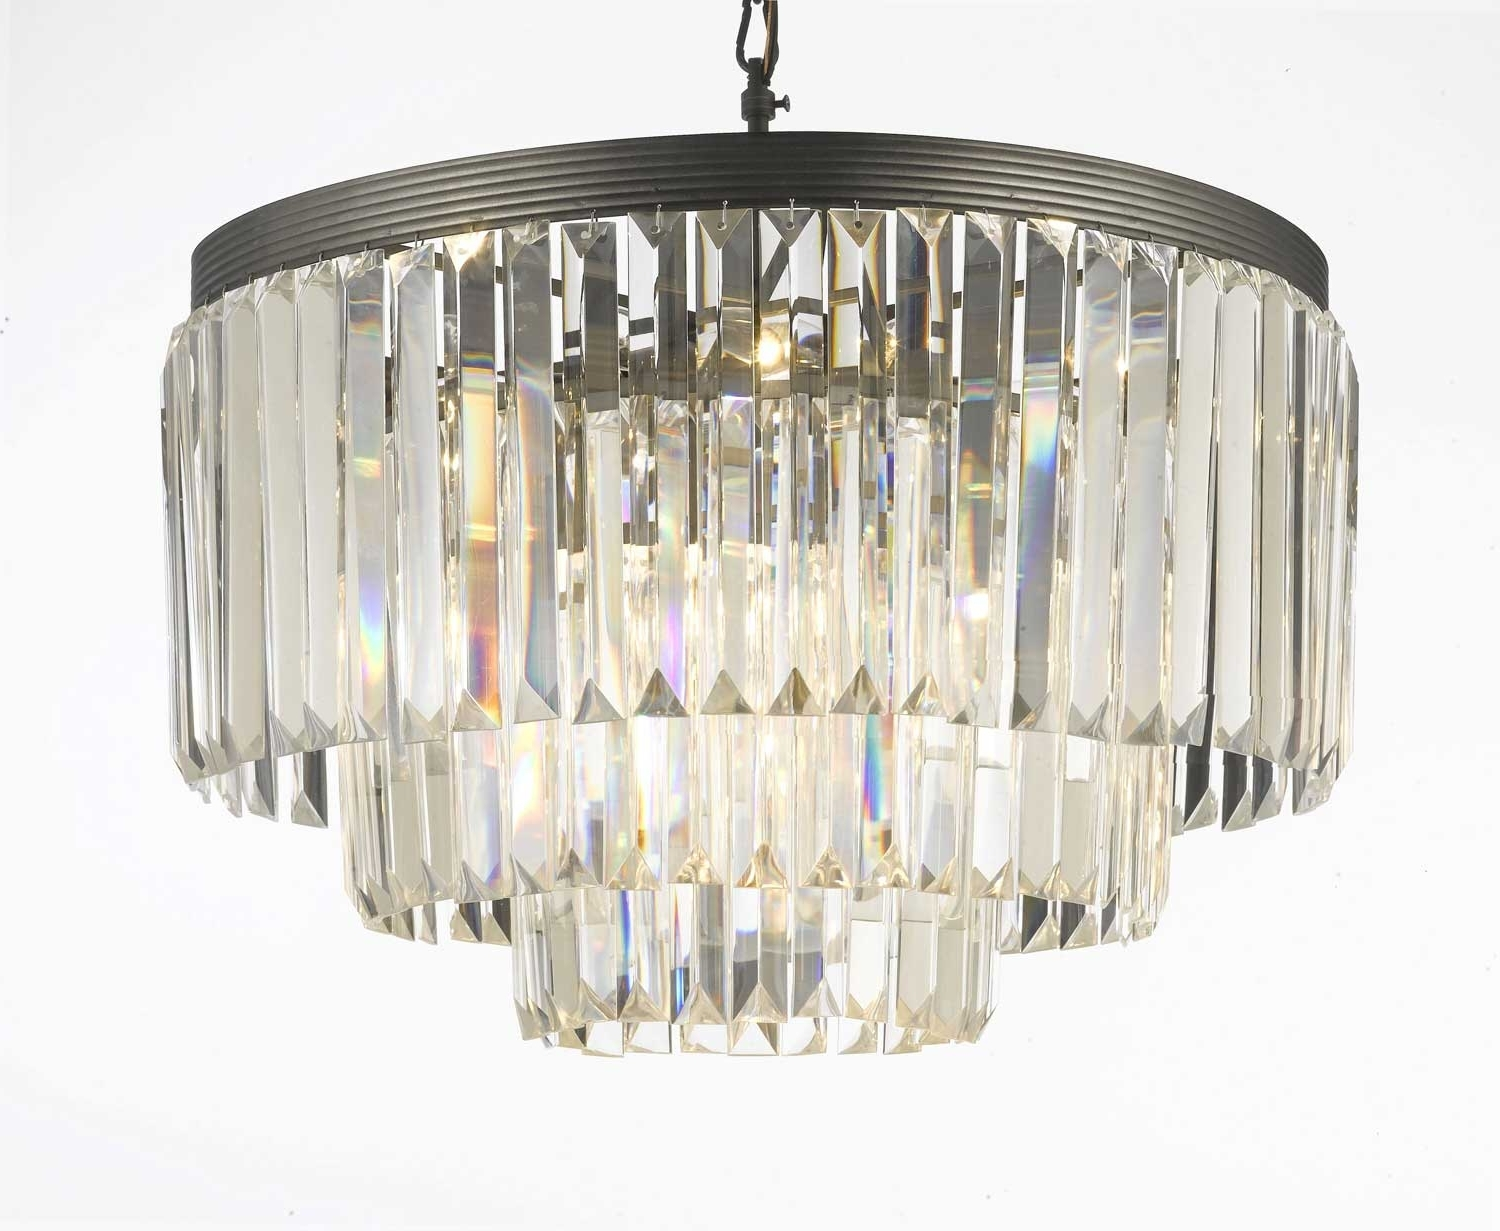 Retro Chandeliers With Regard To Most Up To Date G7 1100 Gallery 18Th & 19Th Century – Art Retro Odeon Crystal Glass (View 11 of 15)